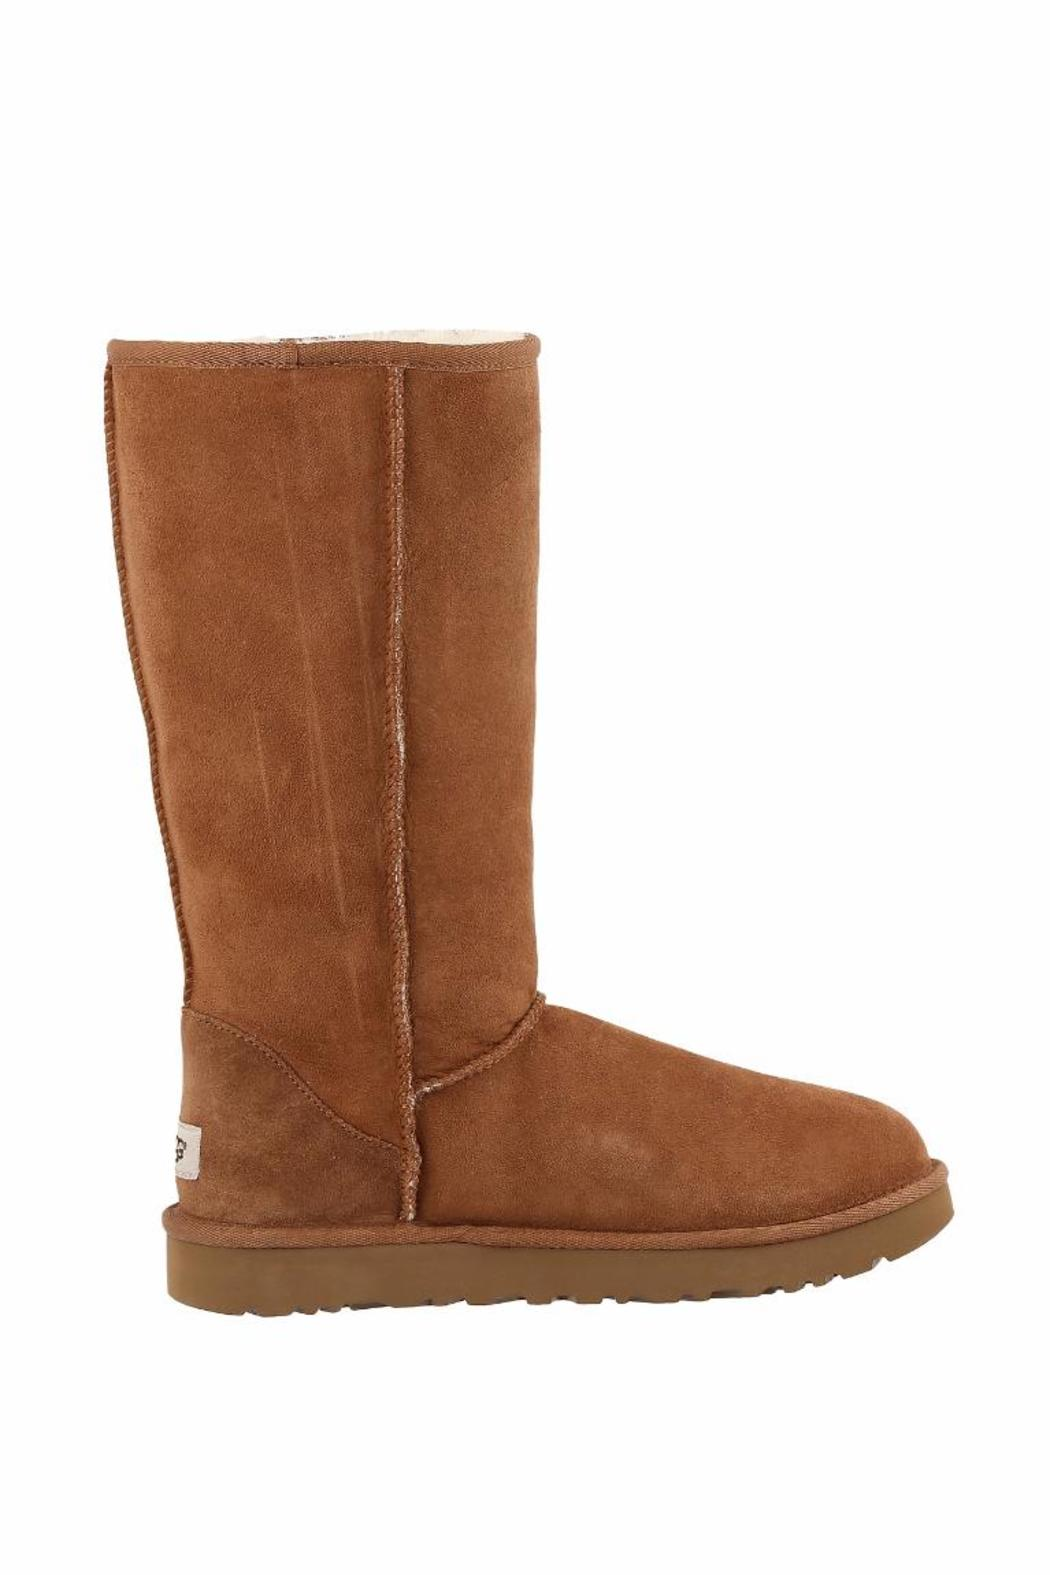 Ugg Australia Ugg Classic Tall From Los Angeles By